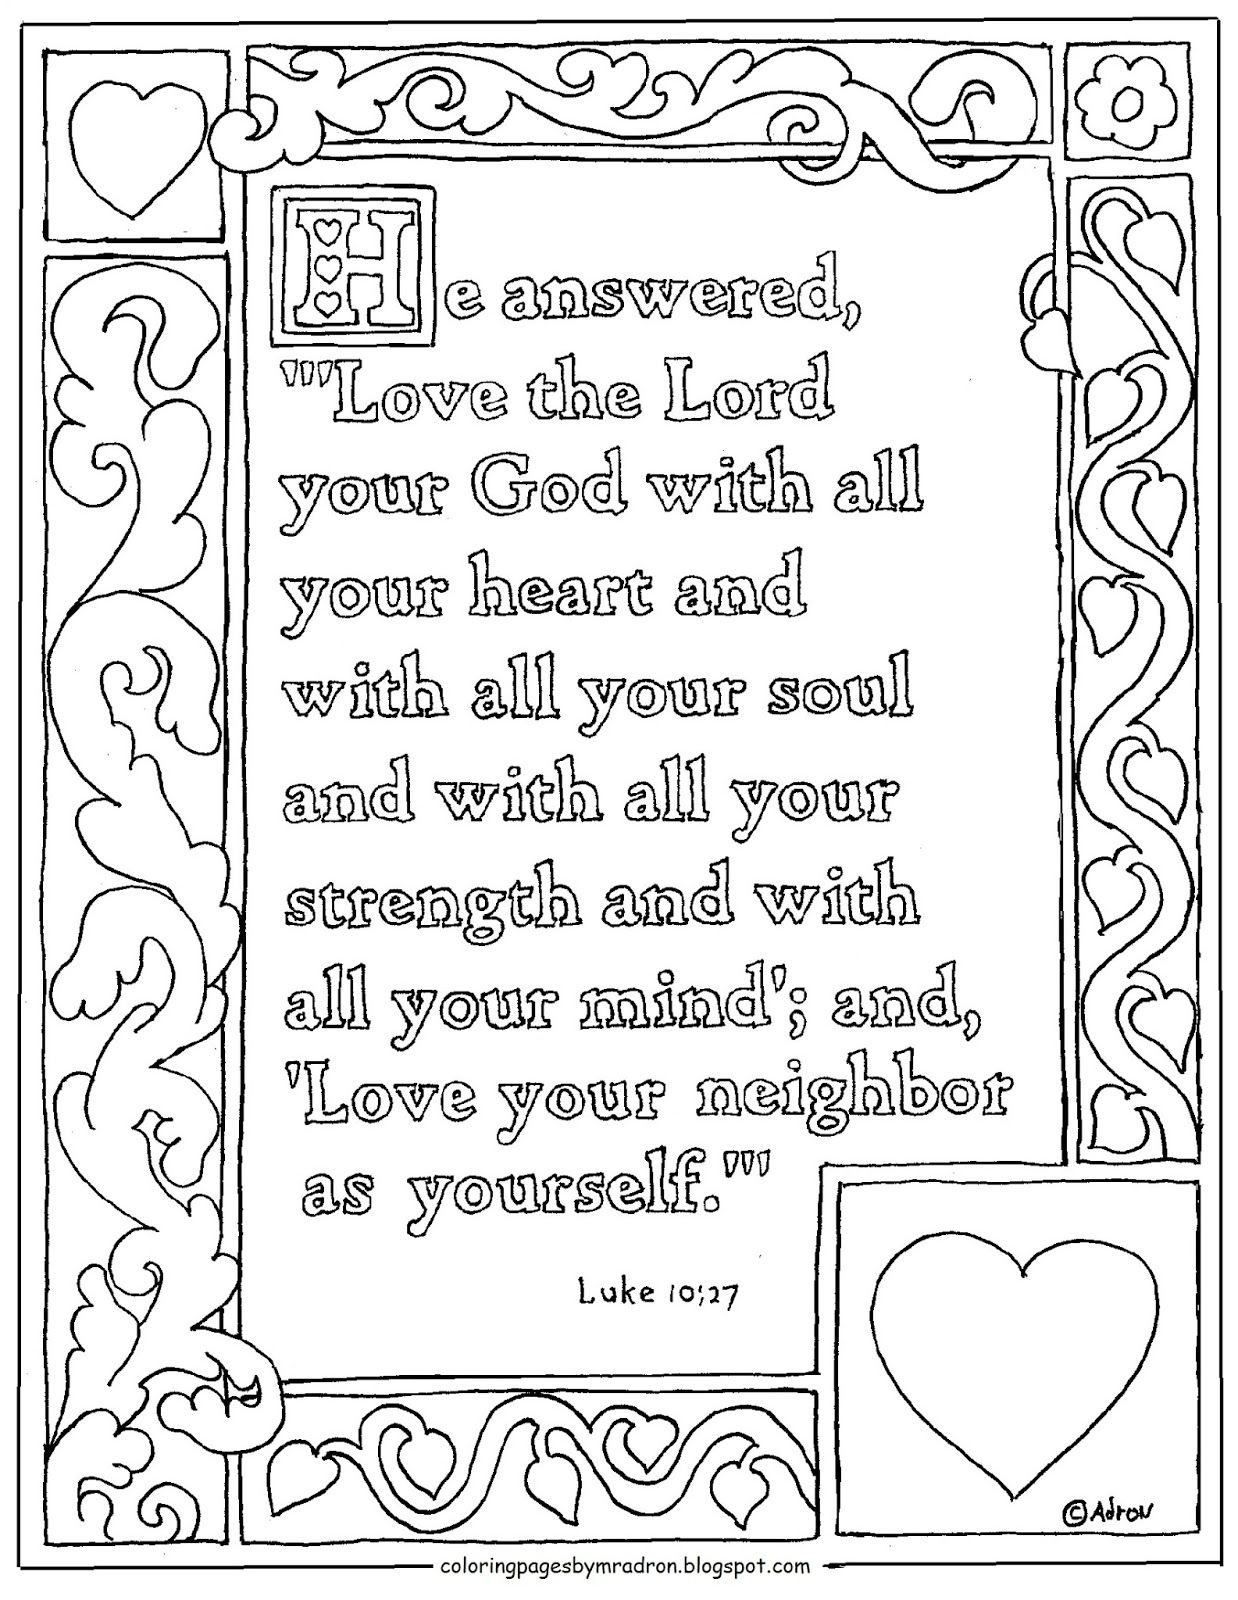 Endorsed Love Thy Neighbor Coloring Pages Your